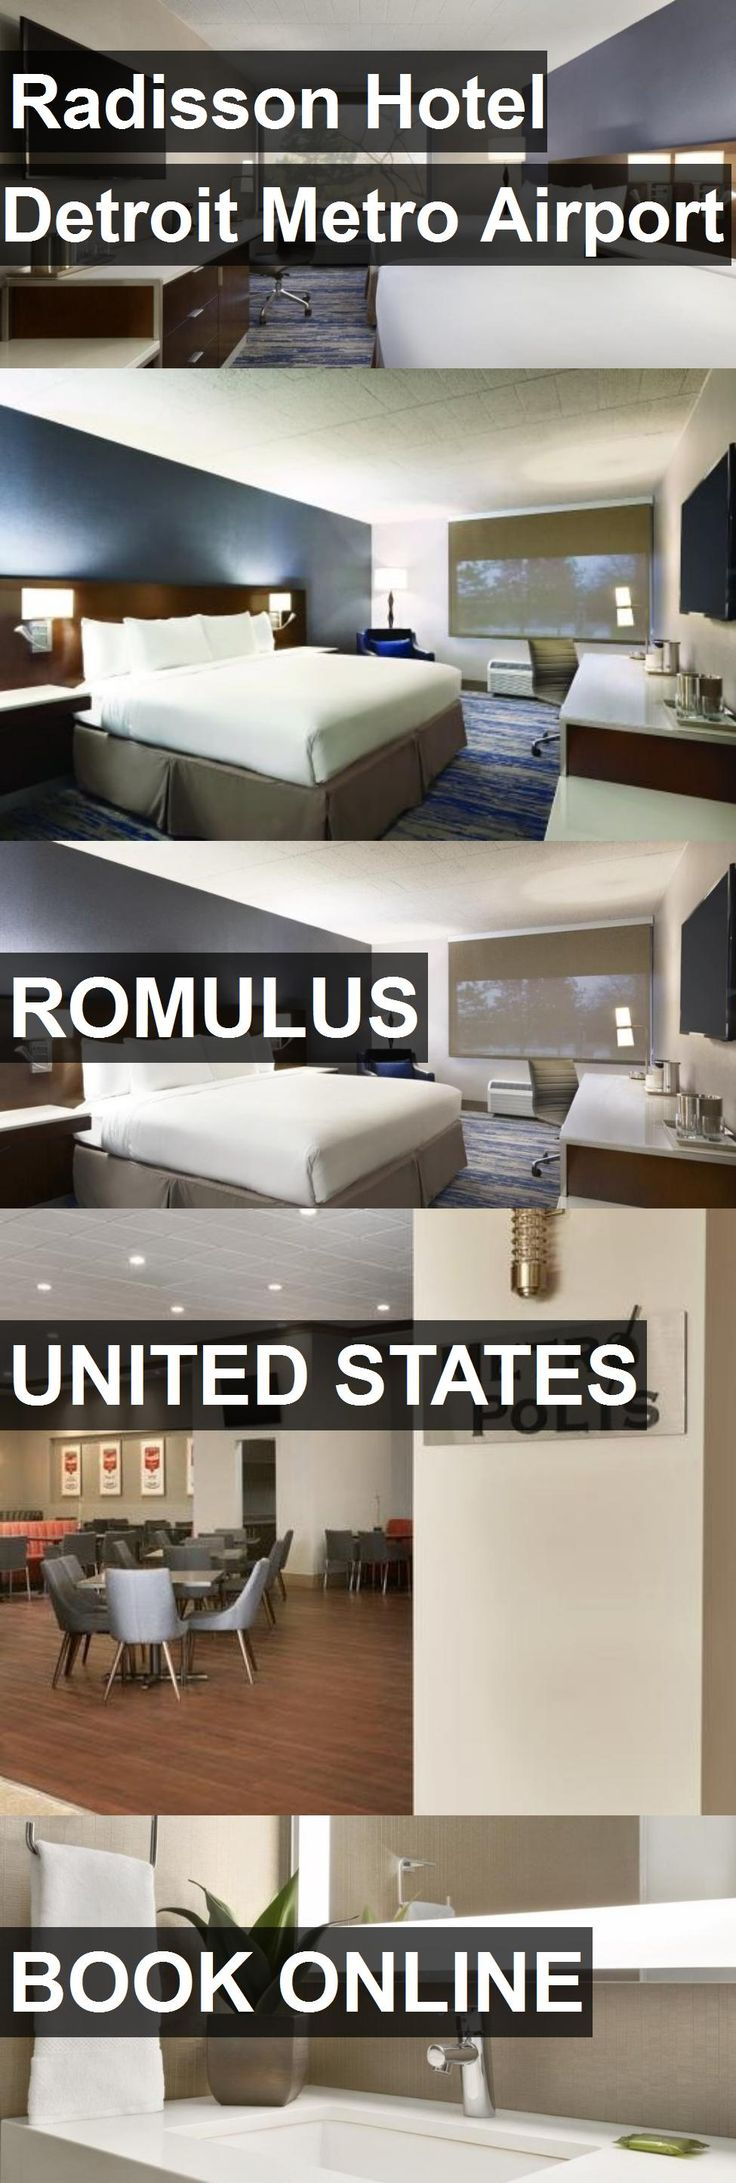 Radisson Hotel Detroit Metro Airport in Romulus, United States. For more information, photos, reviews and best prices please follow the link. #UnitedStates #Romulus #travel #vacation #hotel